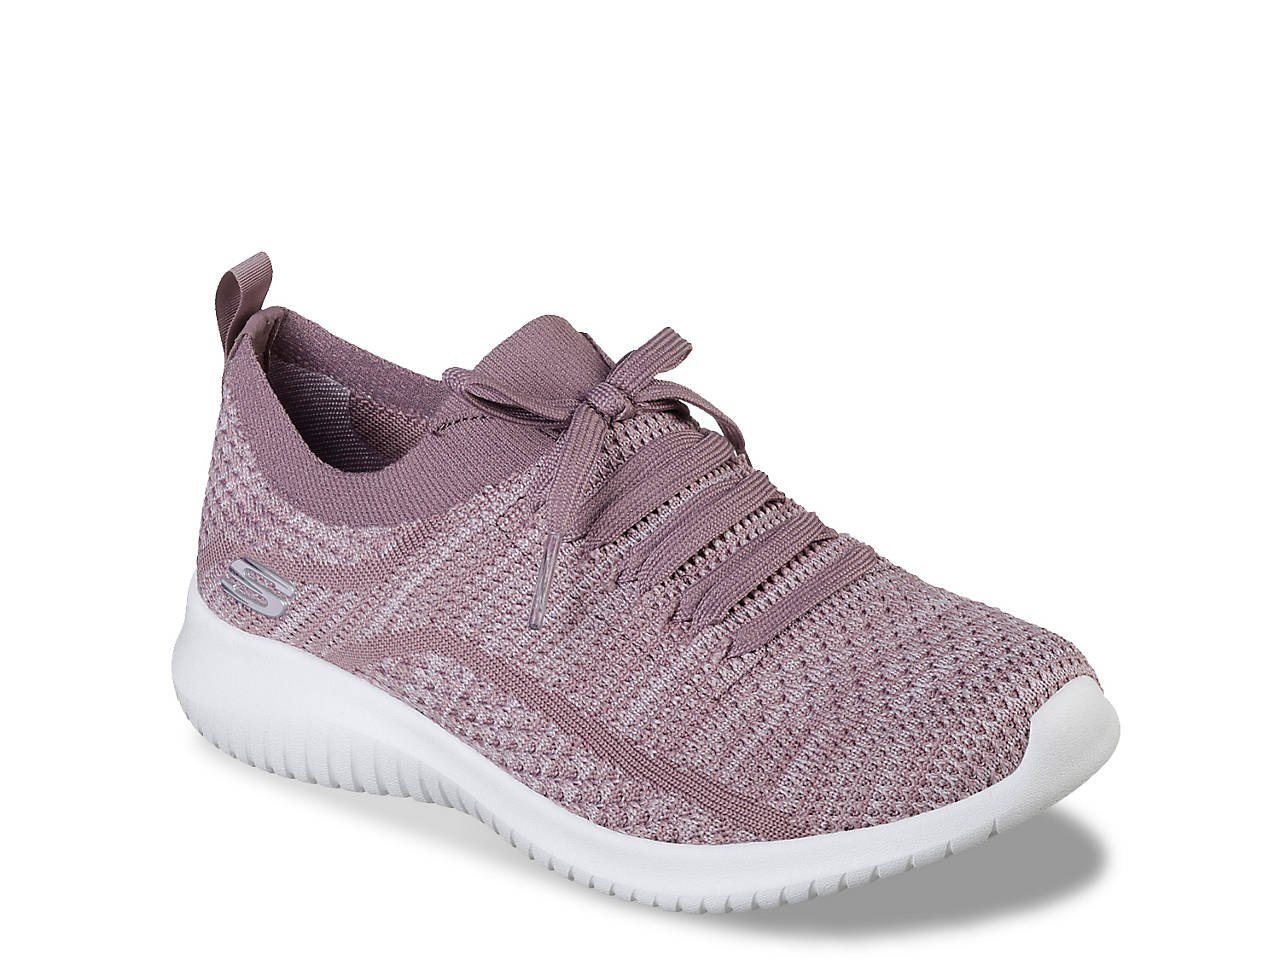 4d90a238c5e8 Skechers Ultra Flex Statements Sneaker - Women s Women s Shoes